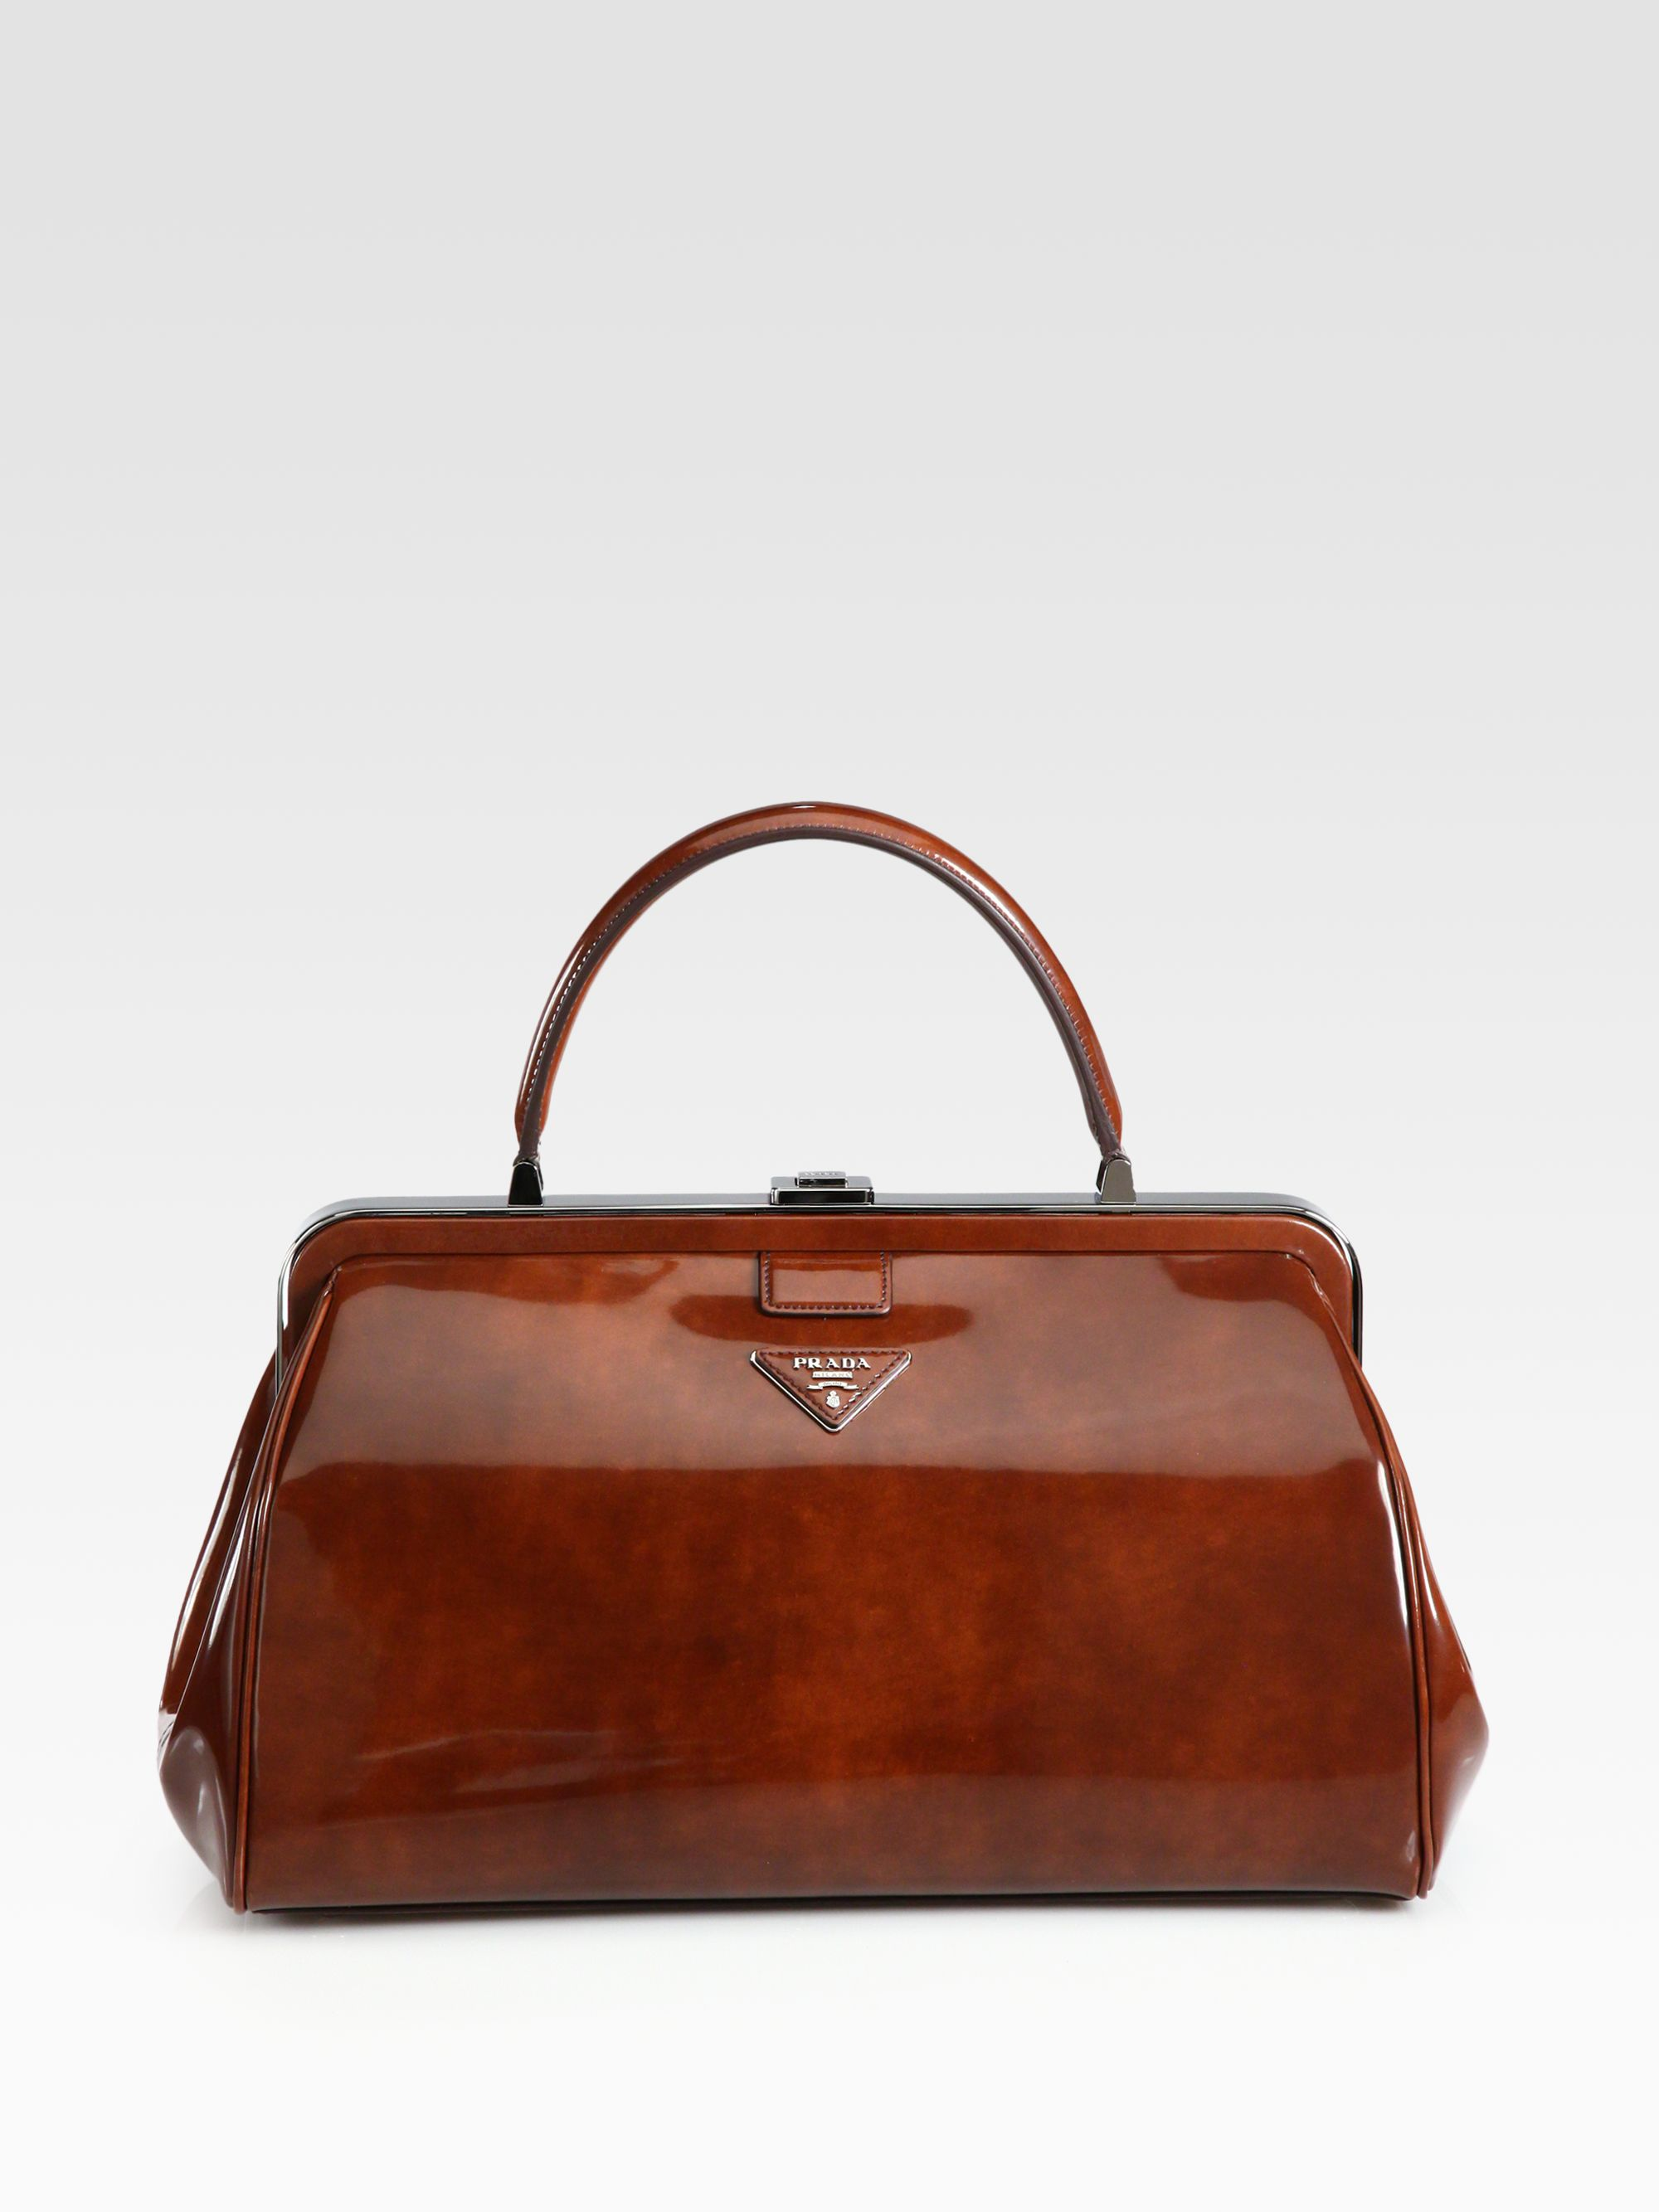 prada shoes quality - Prada Spazzolato Frame Bag in Brown (tobacco) | Lyst